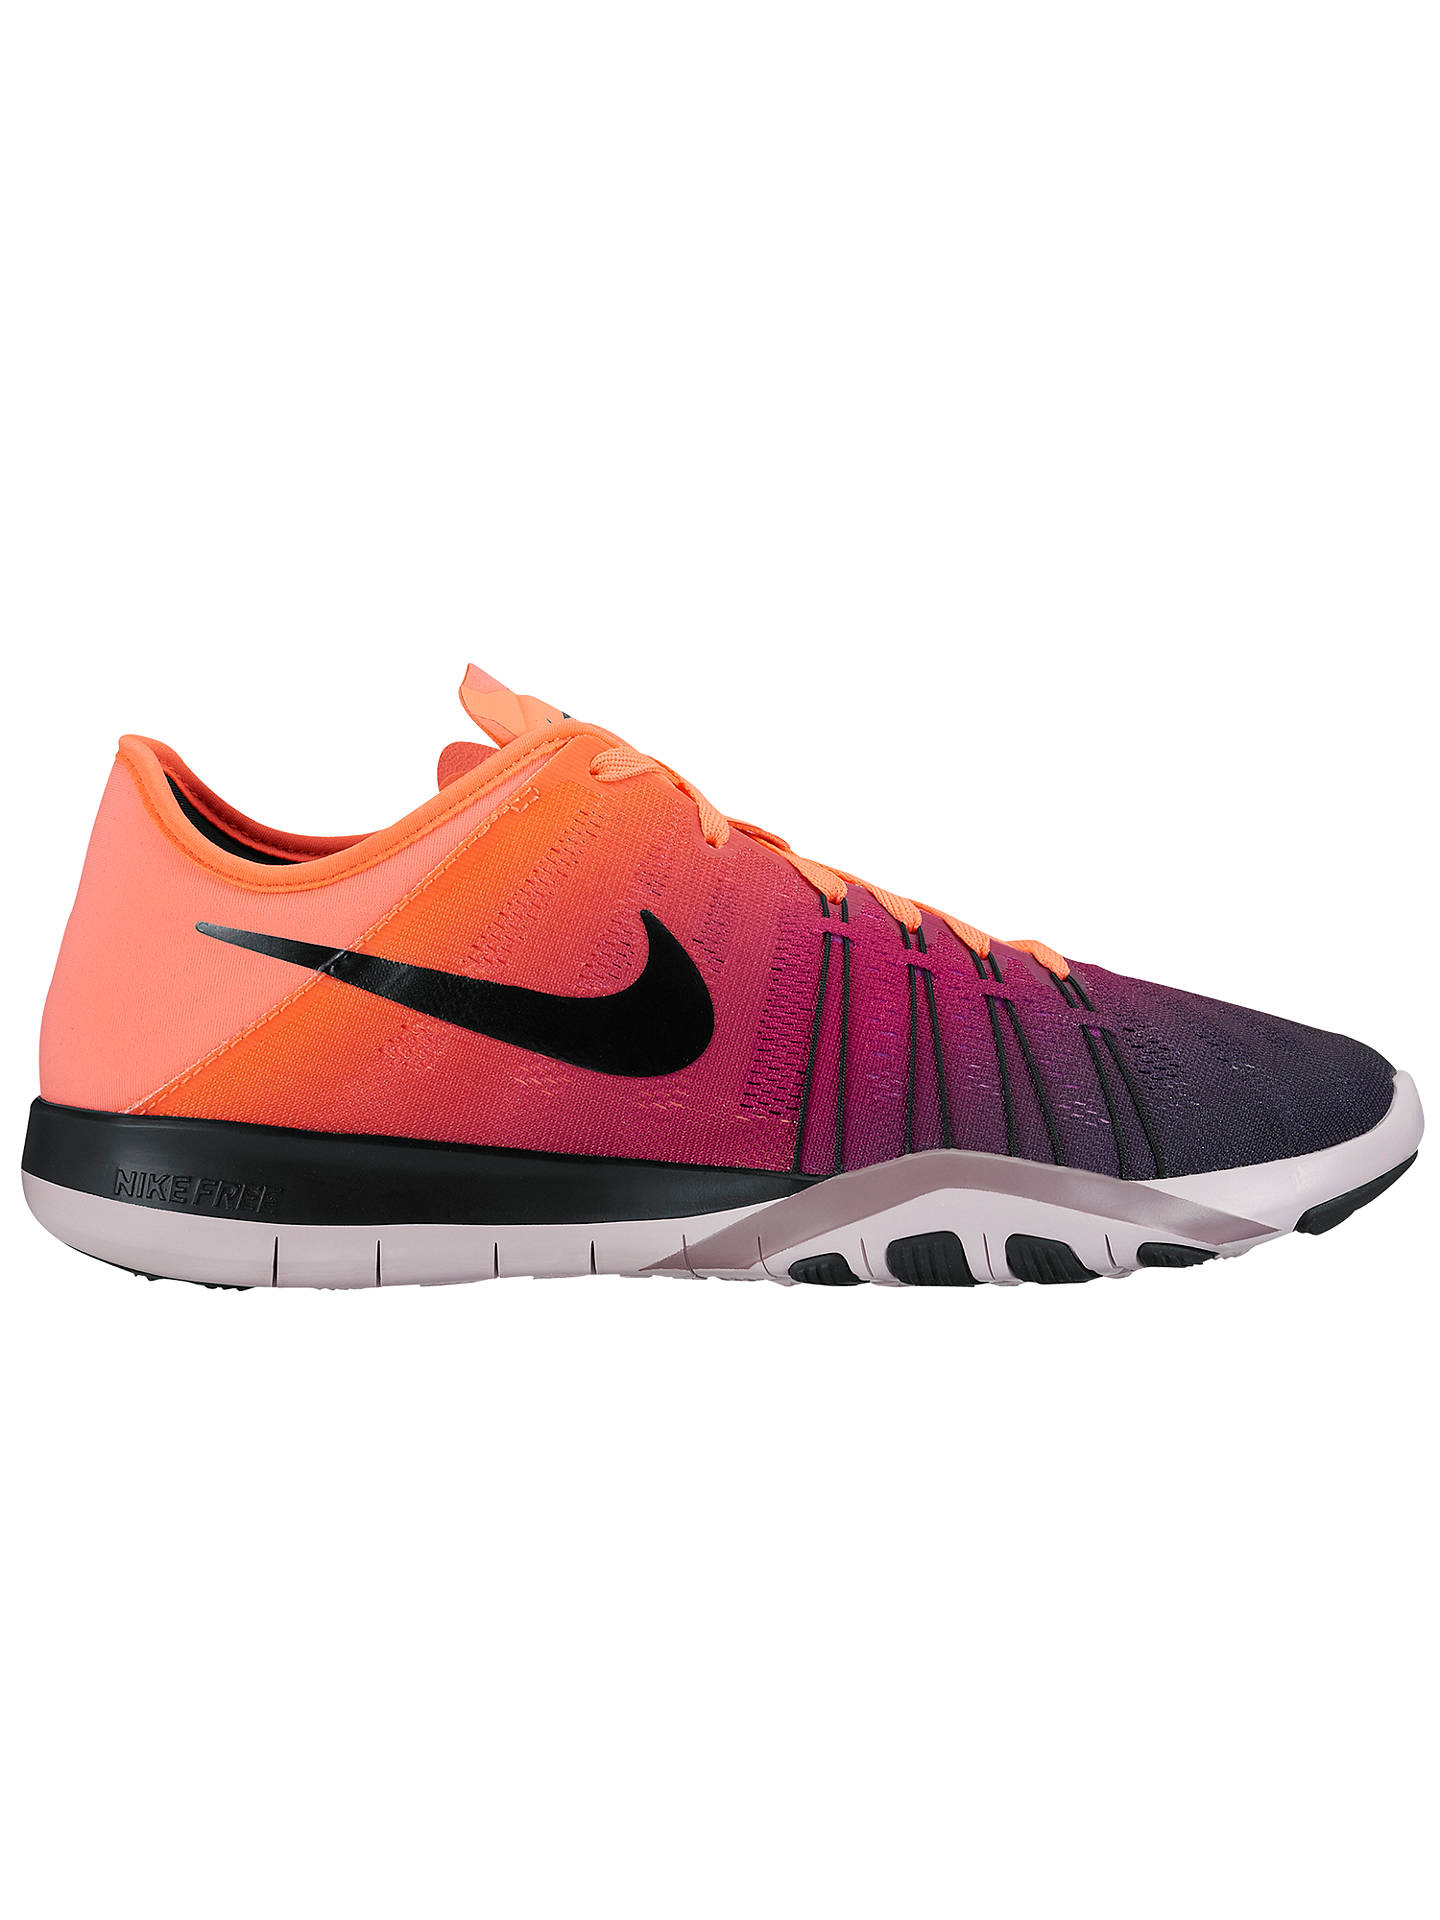 5a60dbd3efd1f Buy Nike Free TR 6 Spectrum Women s Cross Trainers